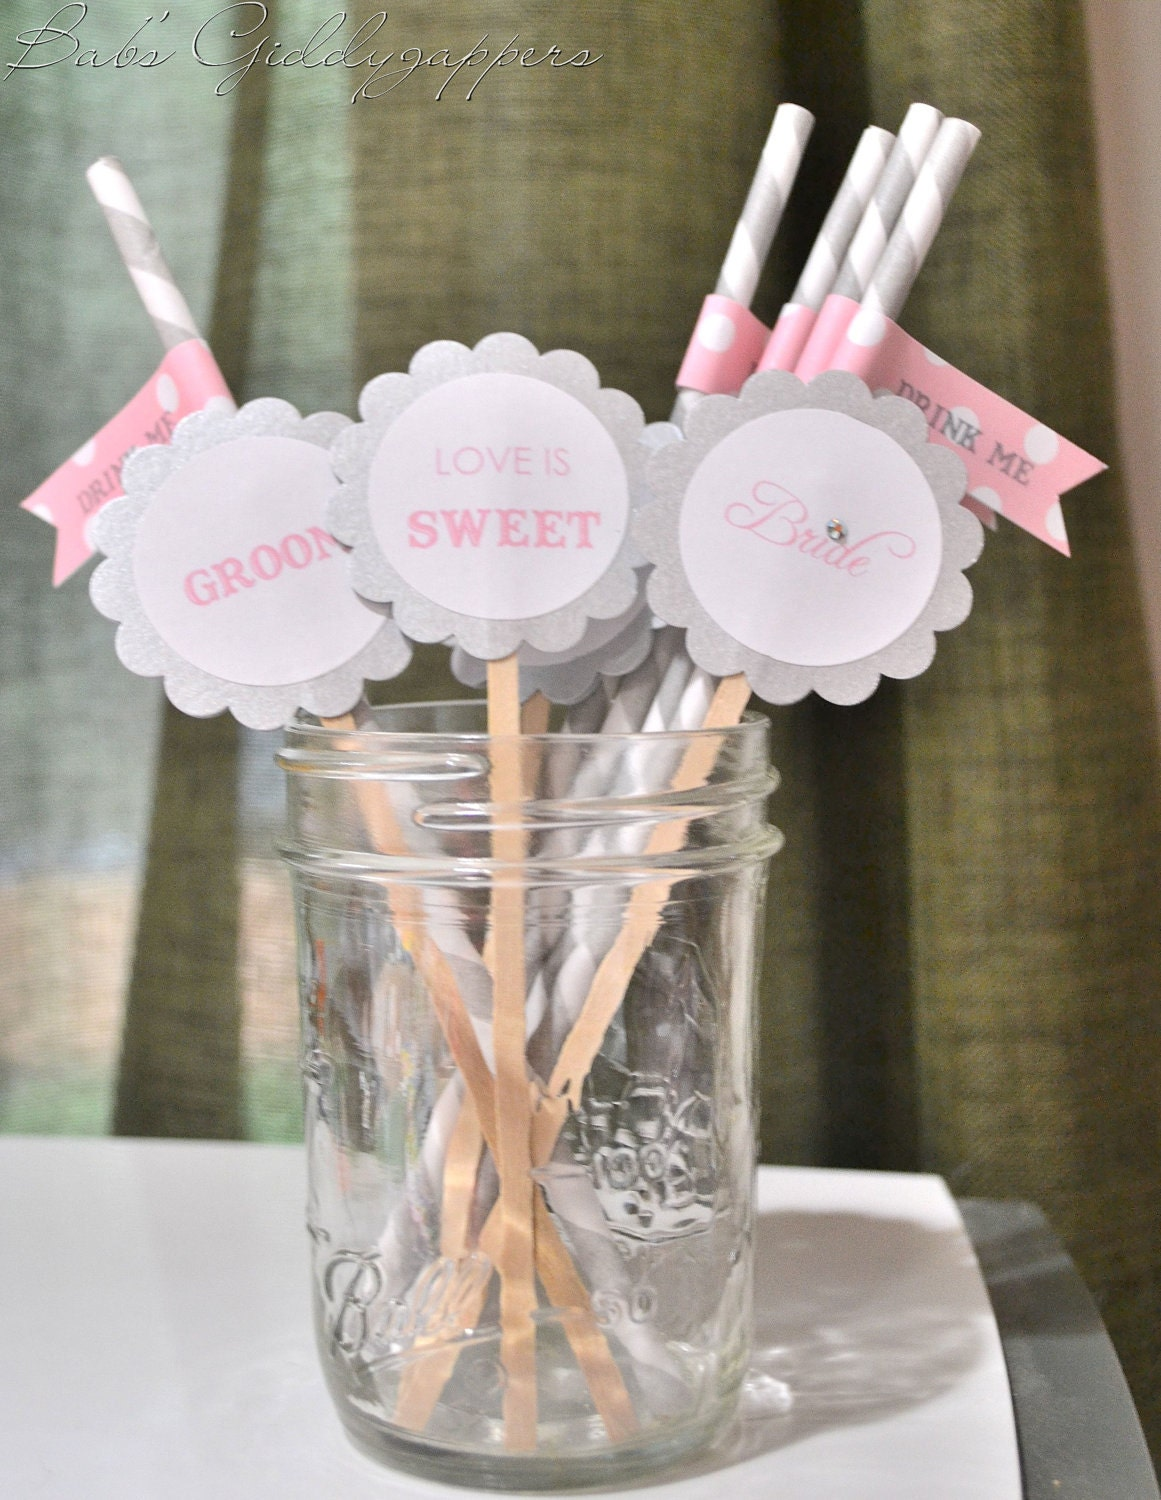 Wedding cupcake flags/drink stirrers